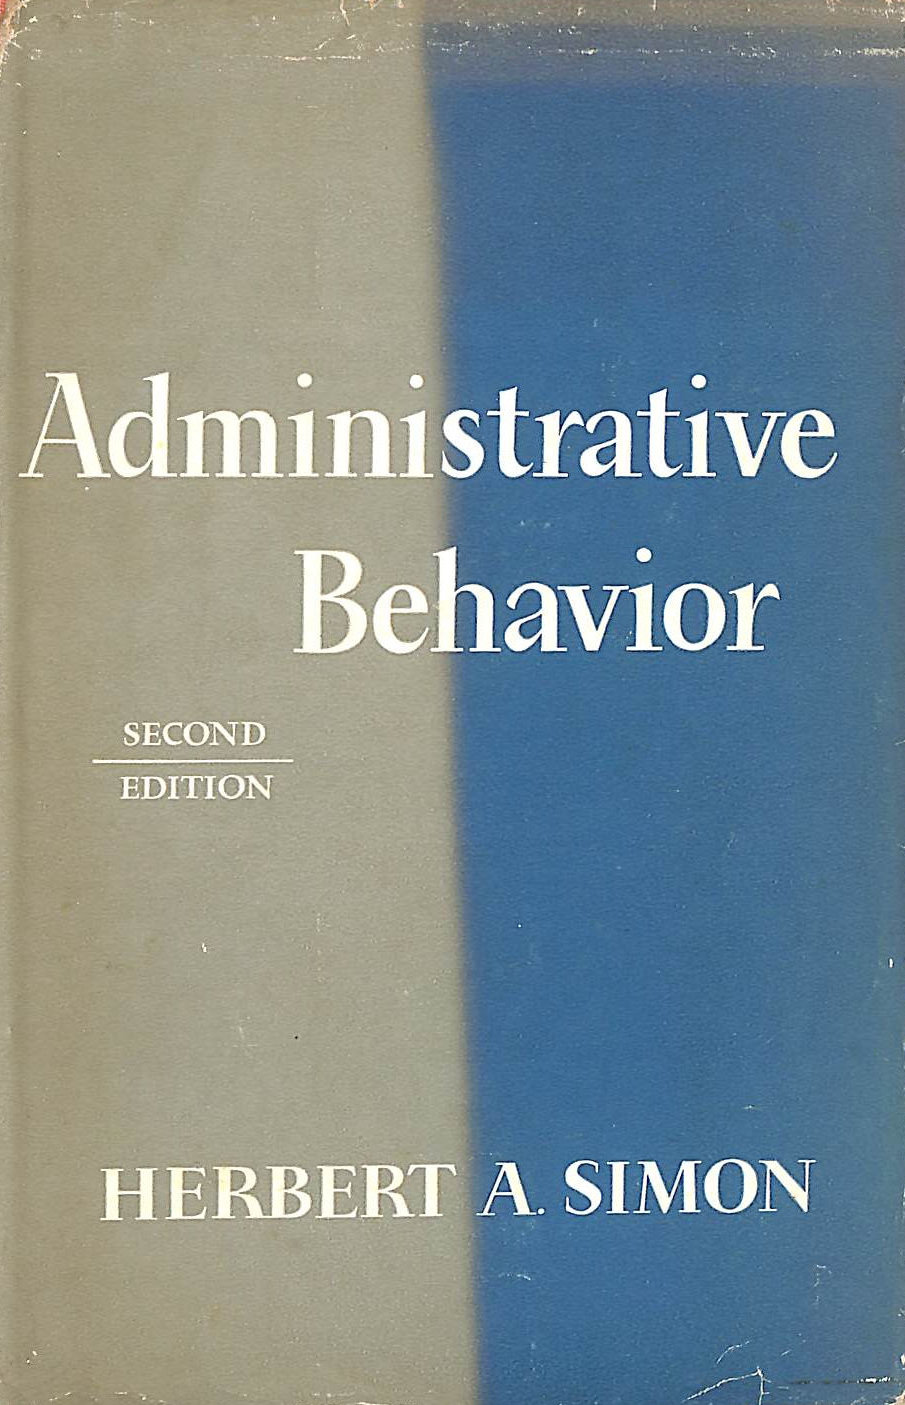 Image for Administrative Behavior